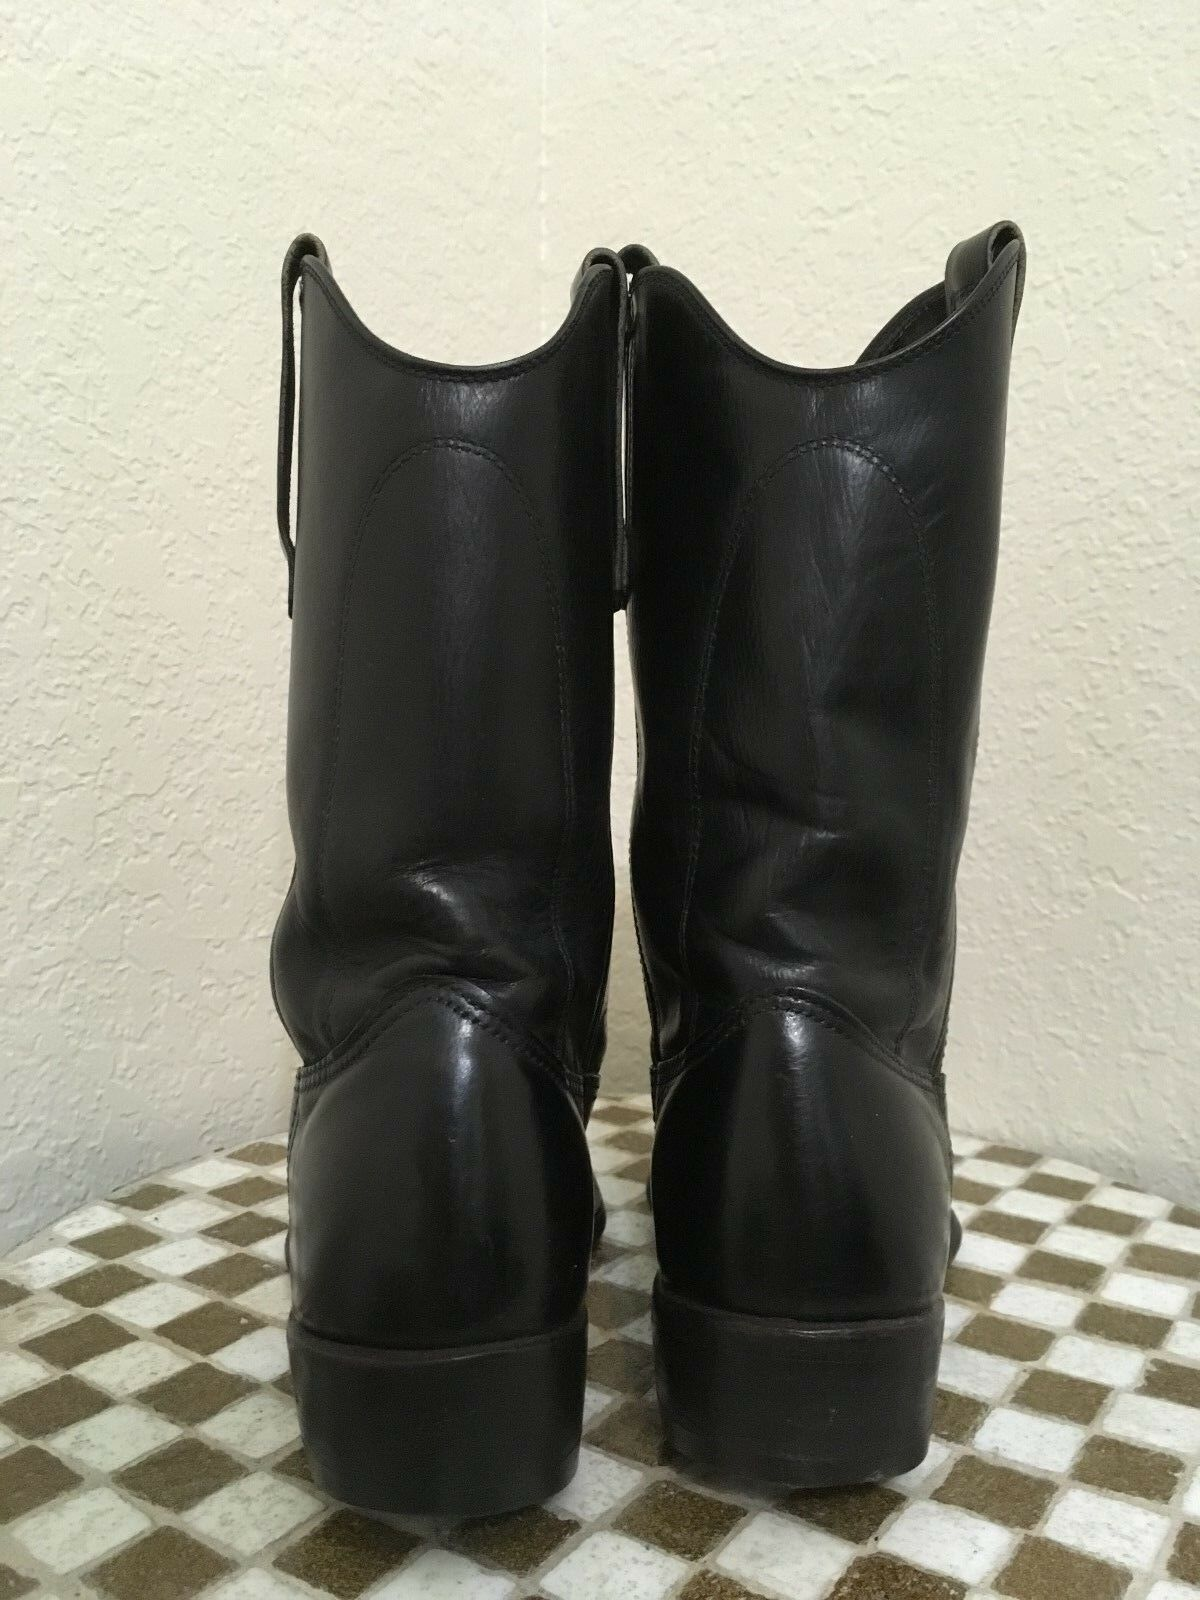 Vintage rouge WING noir LEATHER MILITARY MOTORCYCLE bottes bottes bottes 7D 8744e1